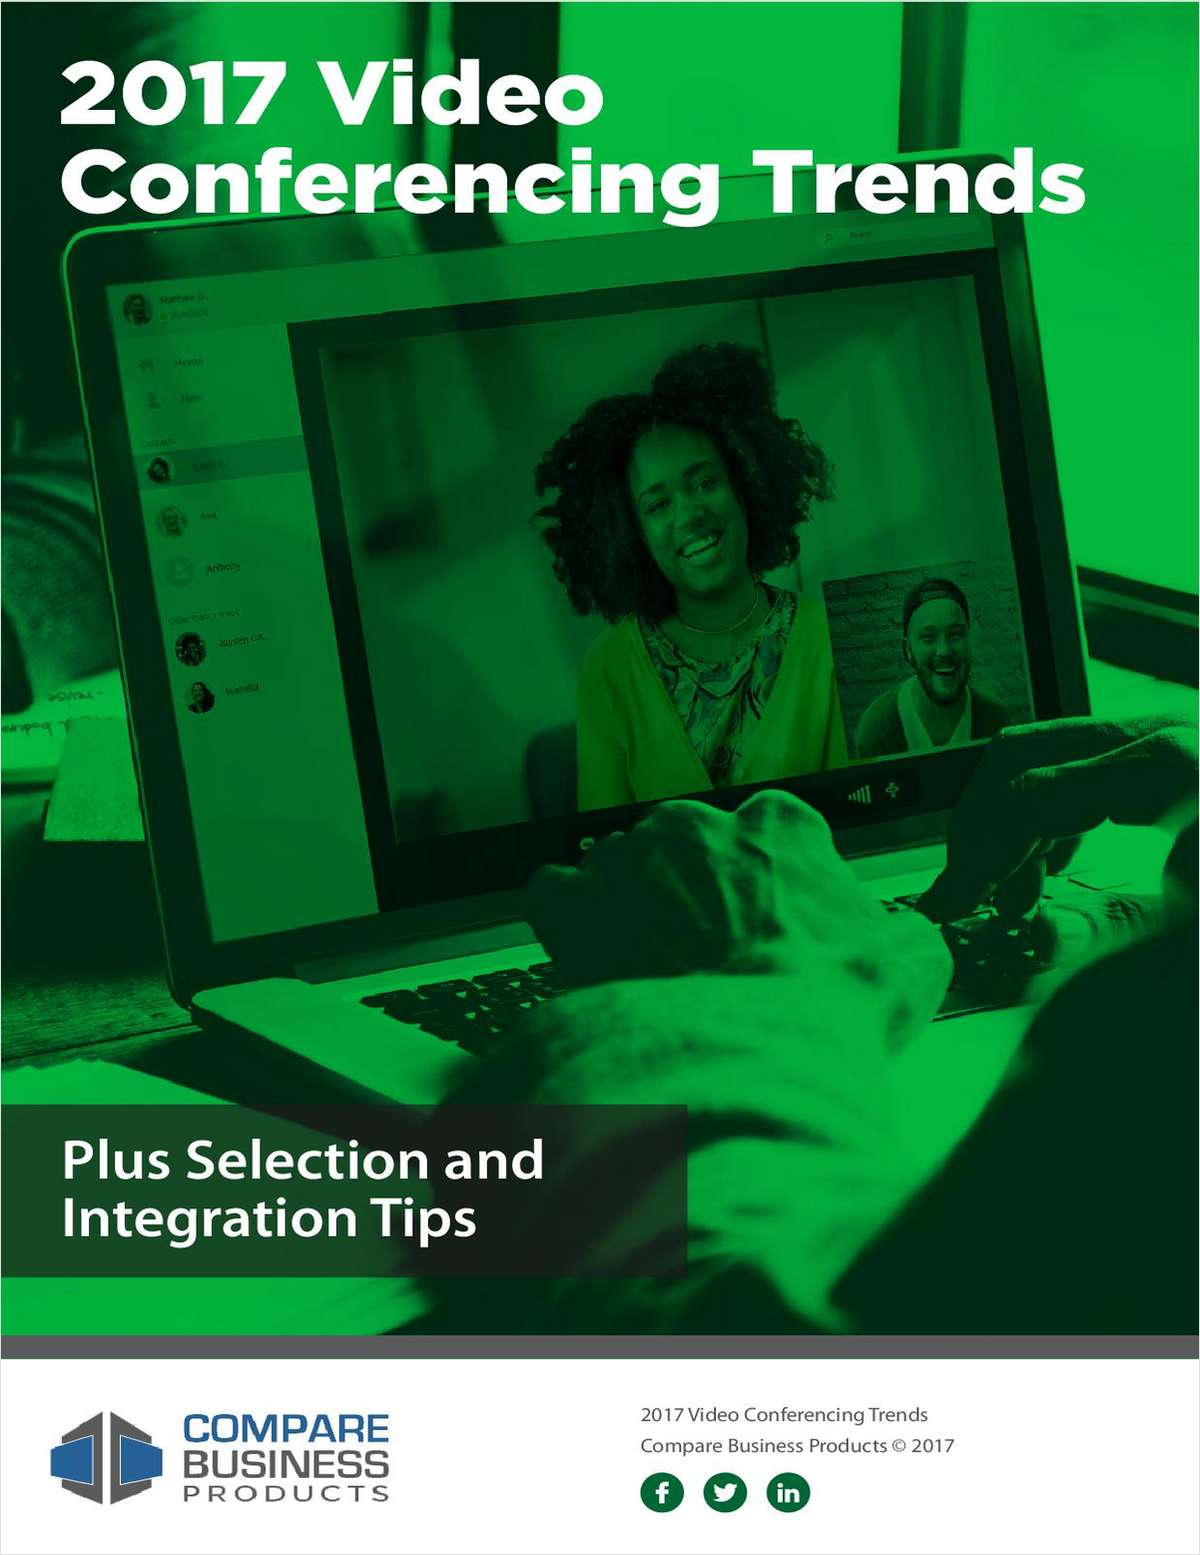 2017 Video Conferencing Trends